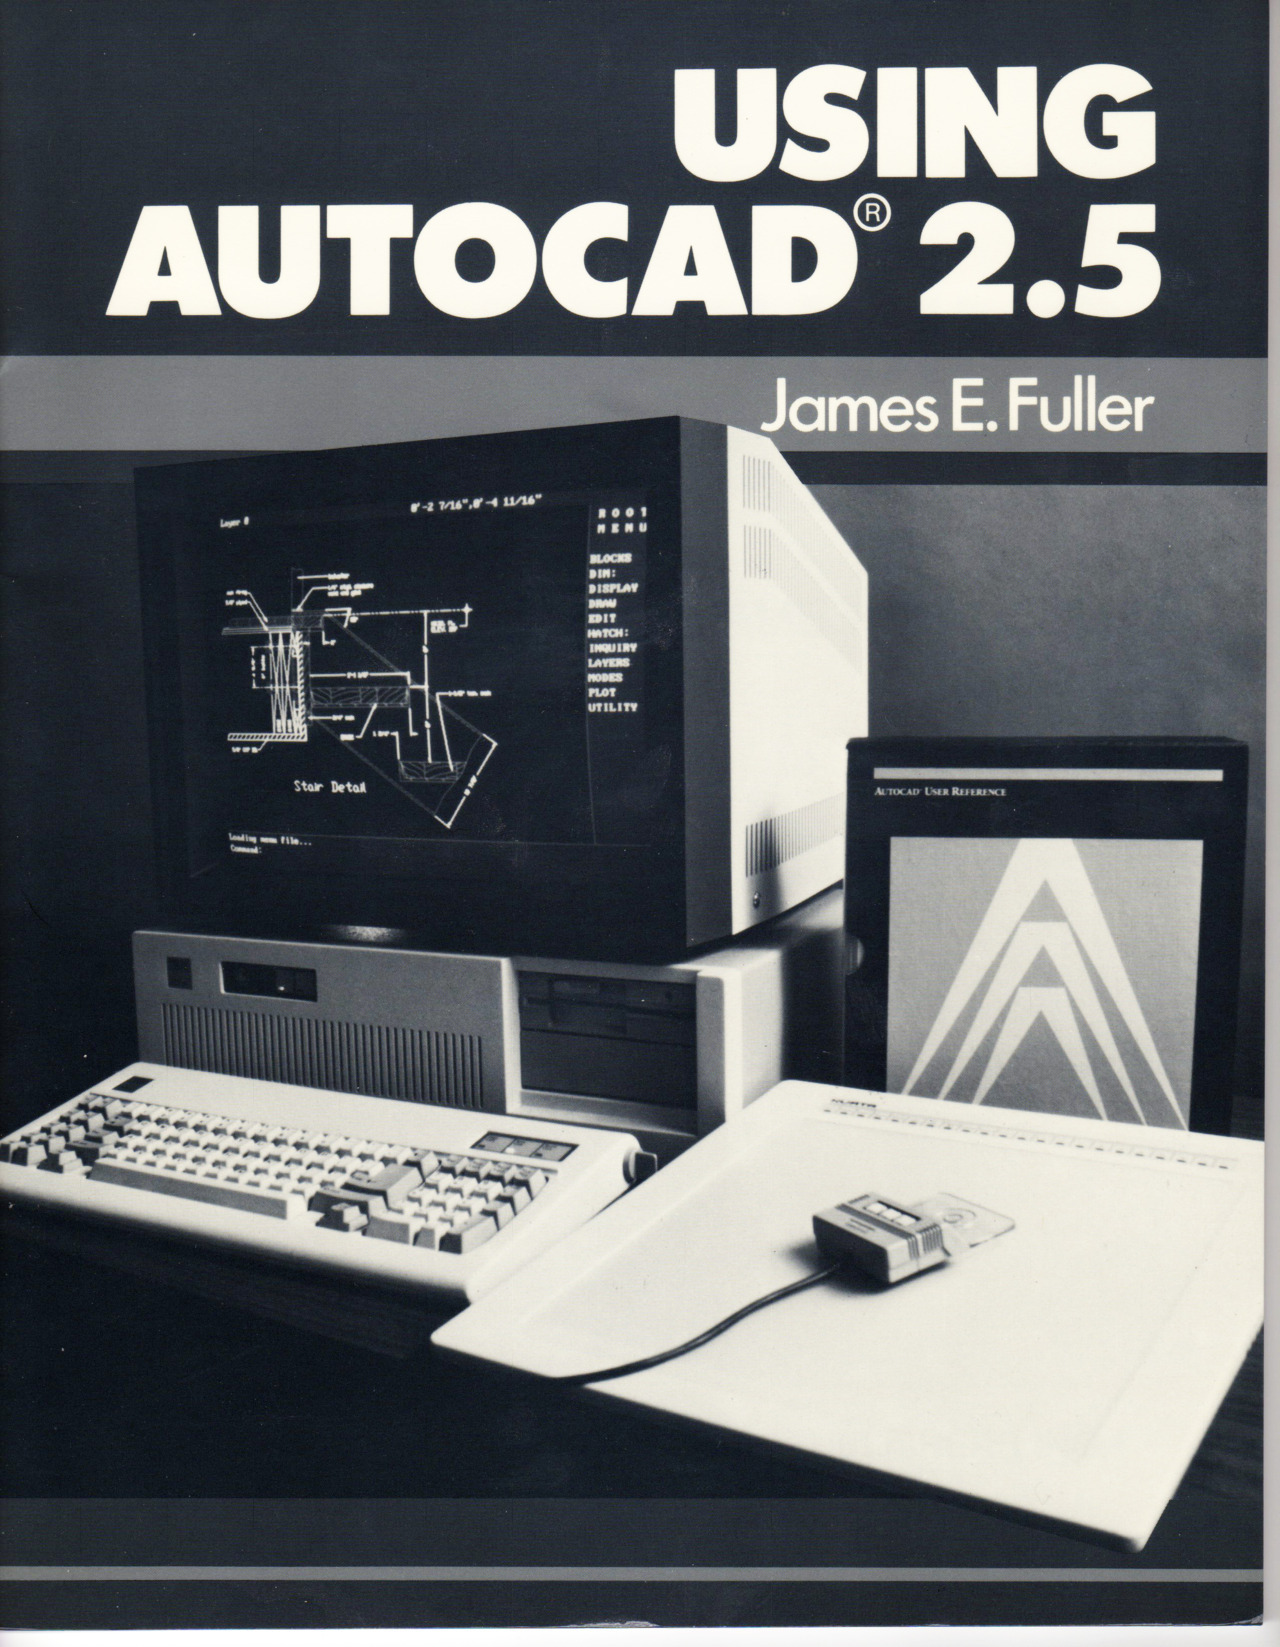 1986 AutoCAD Version 2.5 (Release 7)   June 1986   Between The Lines: All Things Autodesk and Technology Shaan Hurley http://autodesk.blogs.com/between_the_lines/autocad-release-history.html